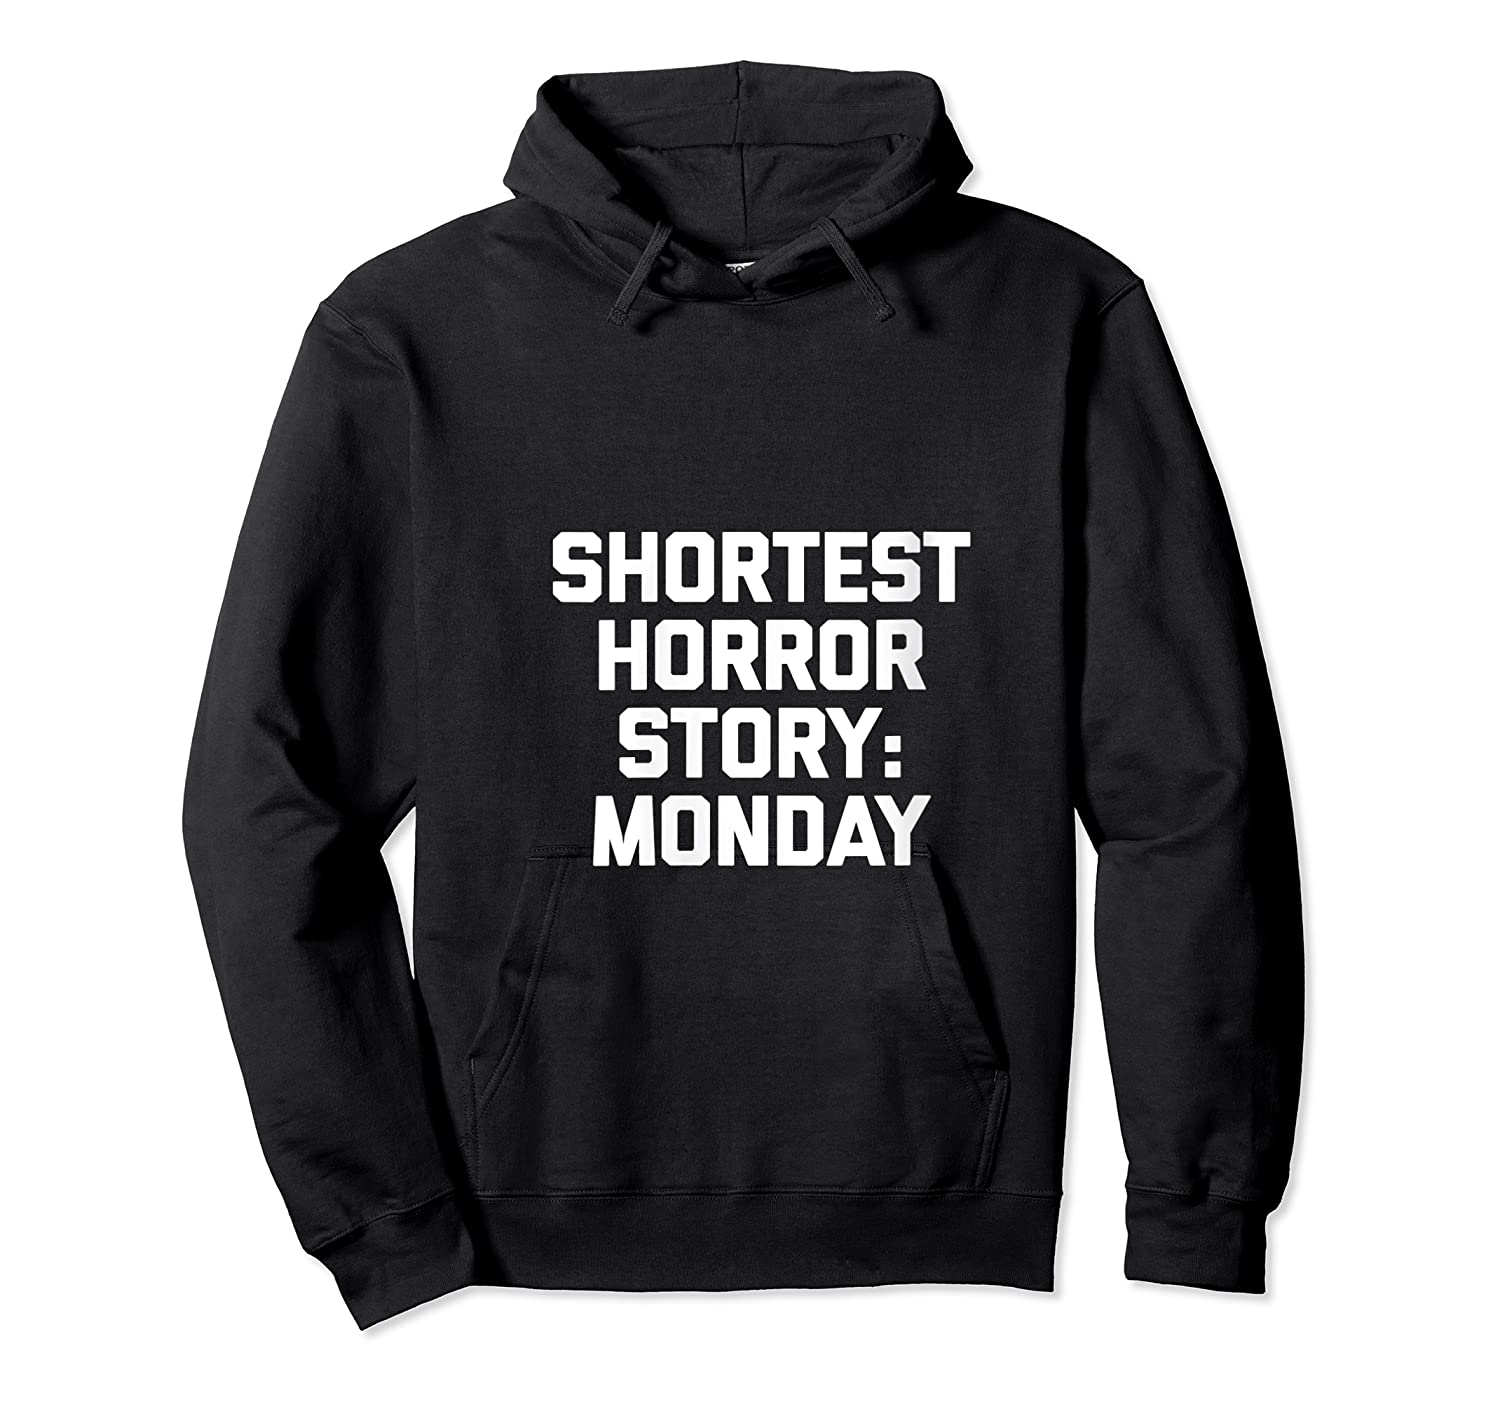 Shortest Horror Story Monday Funny Saying Sarcastic Shirts Unisex Pullover Hoodie